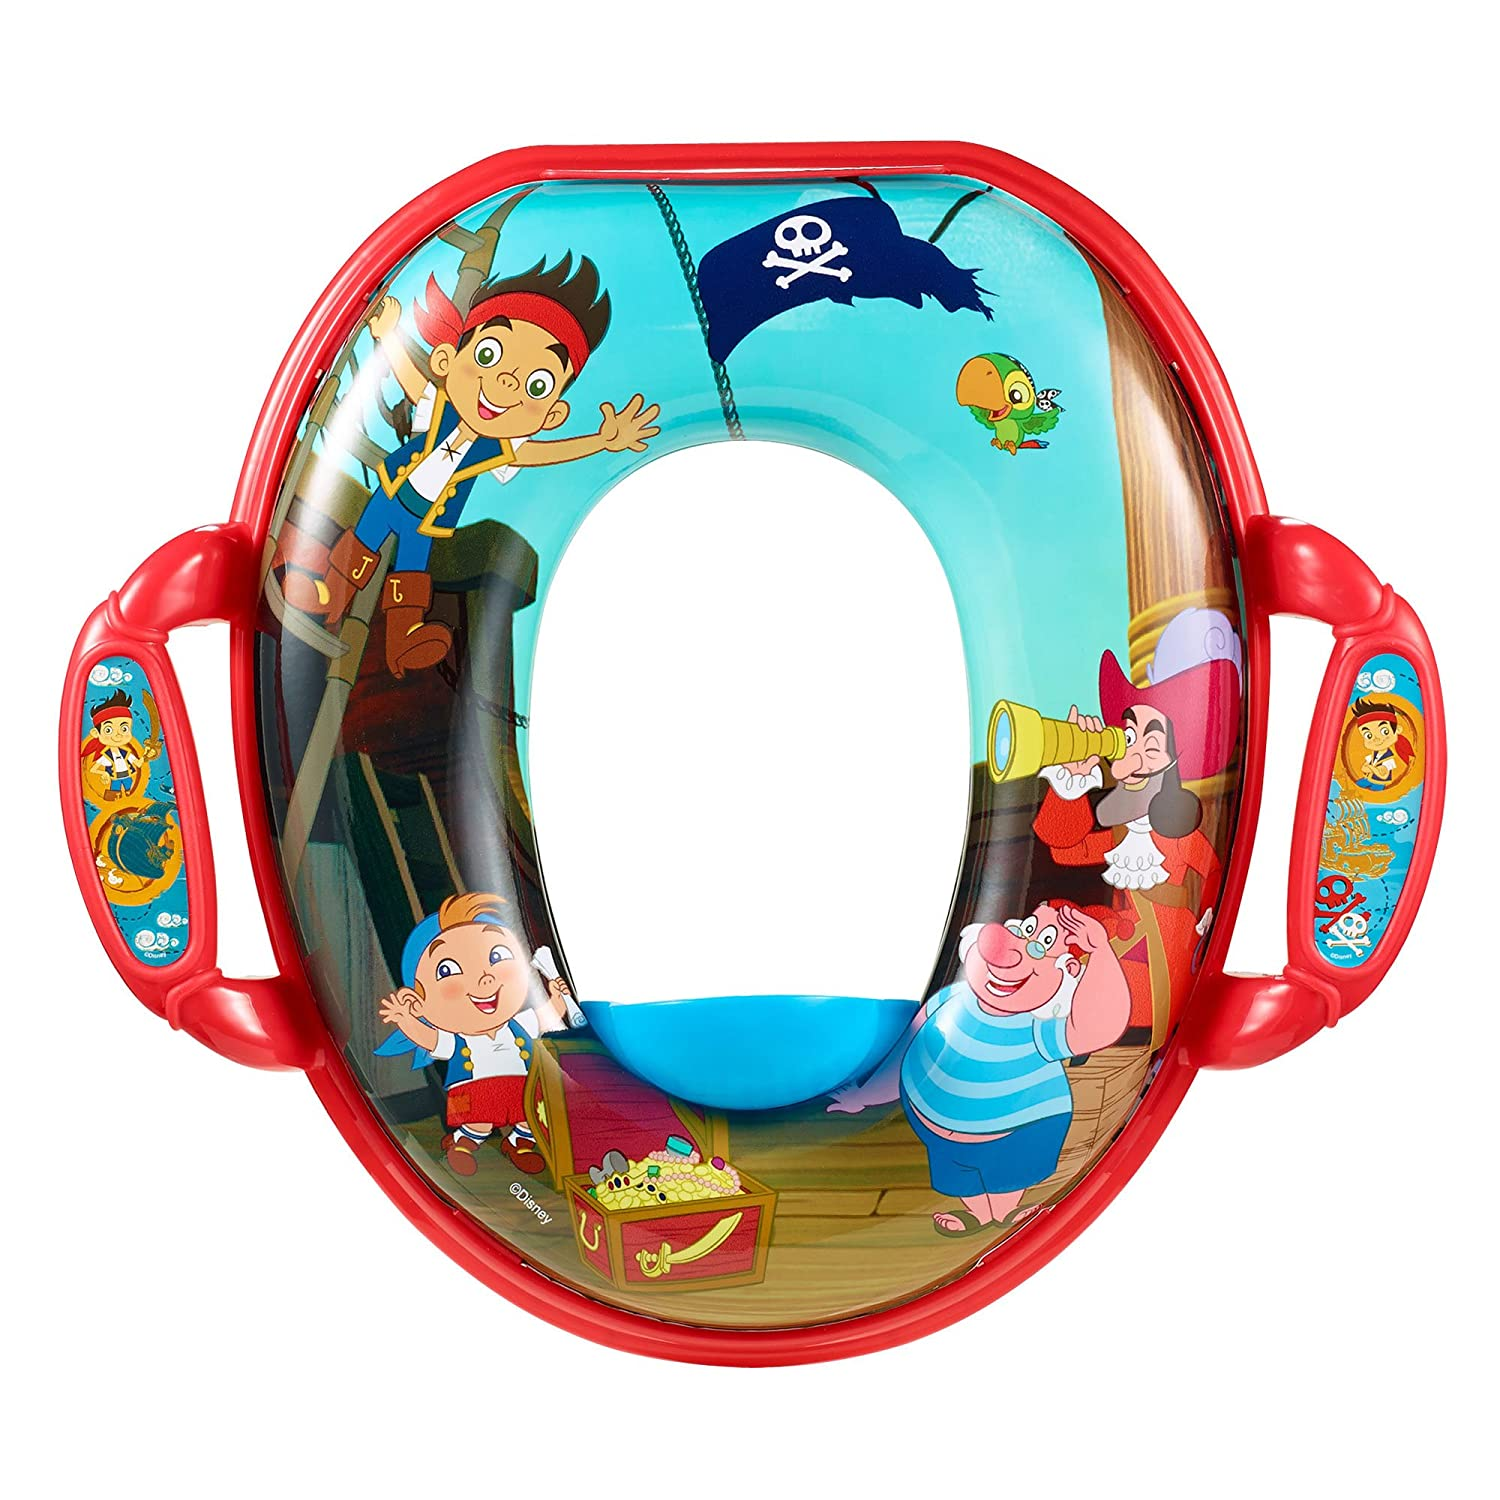 The First Years Disney Junior Jake & The Neverland Pirates Soft Potty Seat Y10246CA1